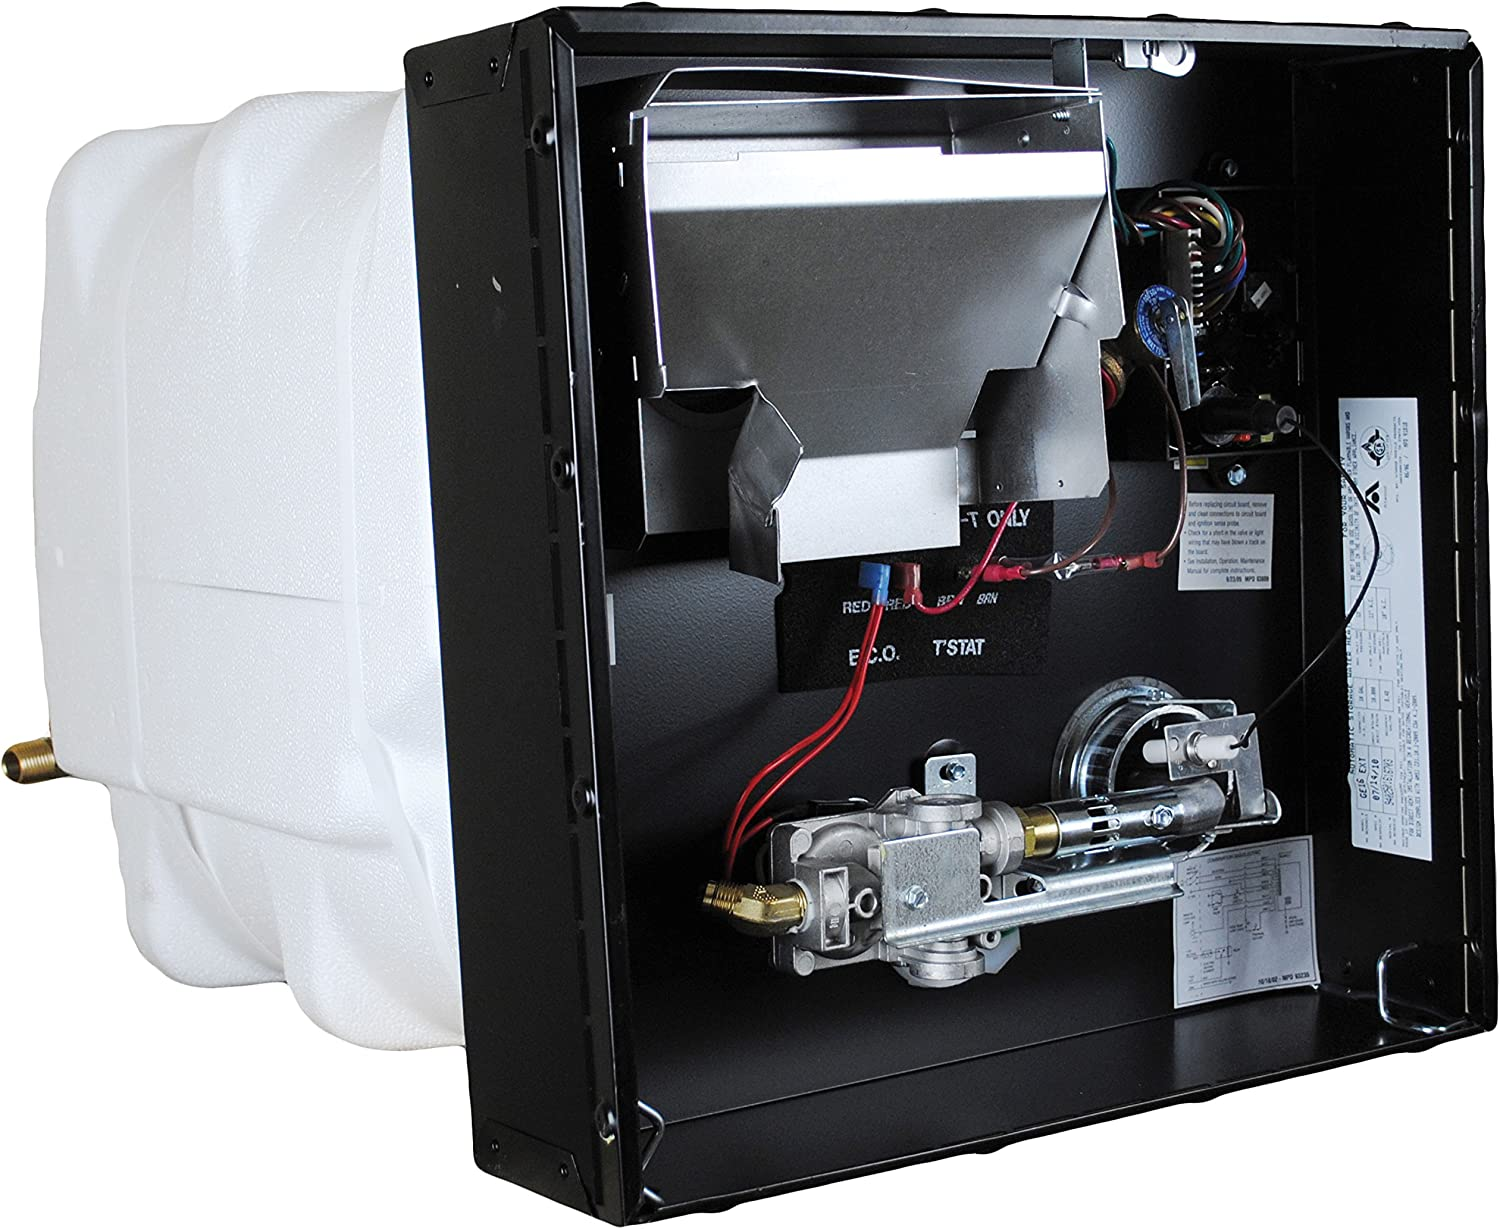 10 Gallon LP//Electric Atwood 94026 XT Water Heater